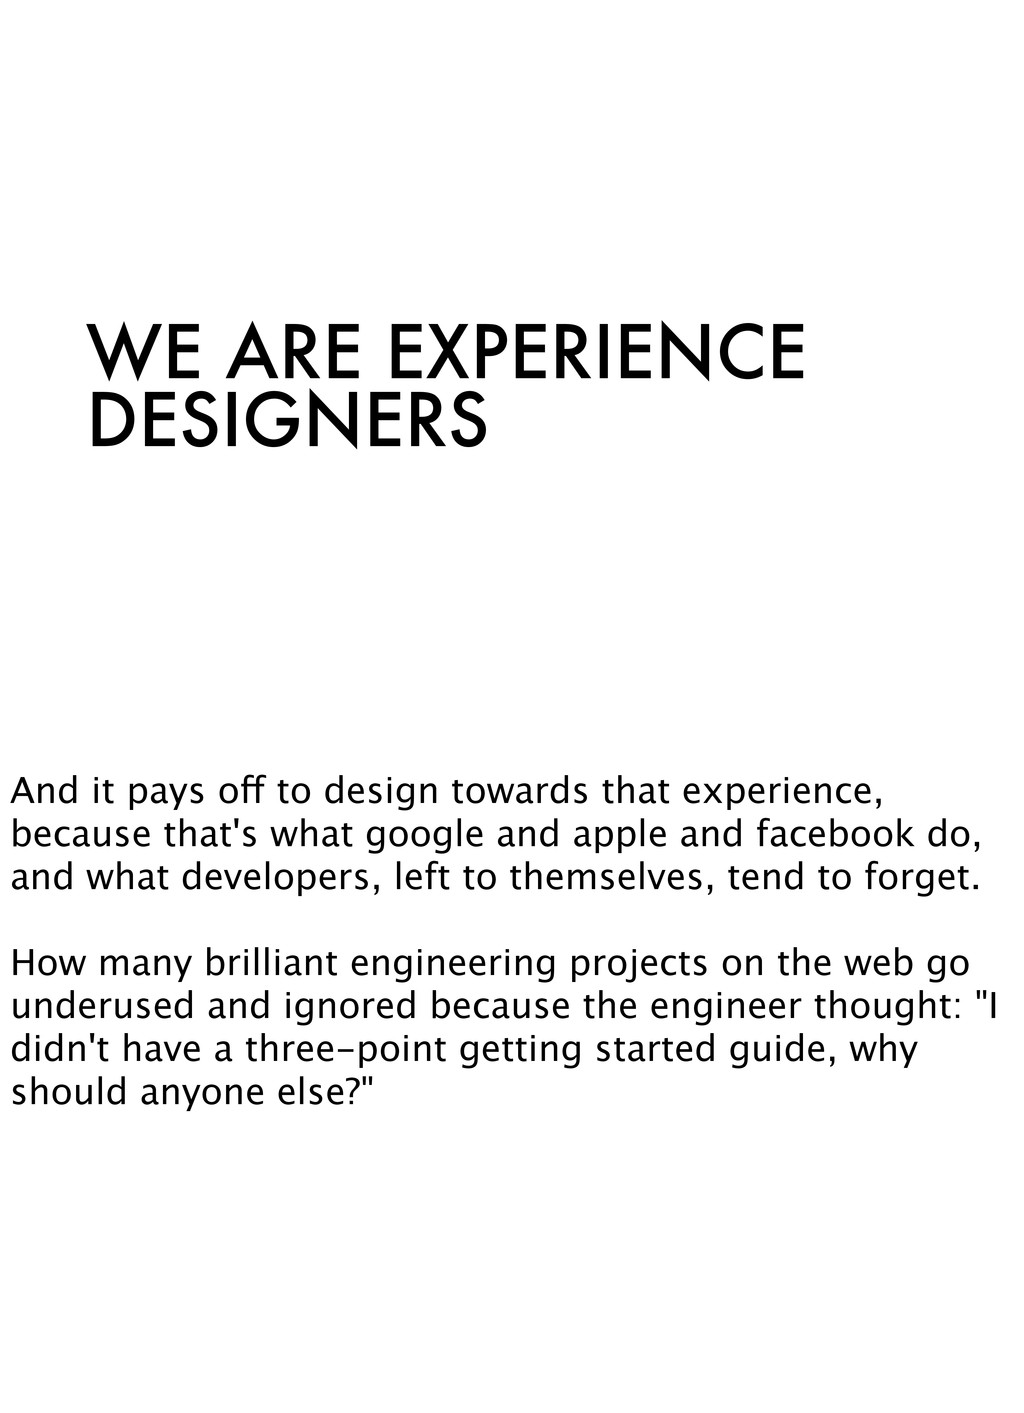 WE ARE EXPERIENCE DESIGNERS And it pays off to ...